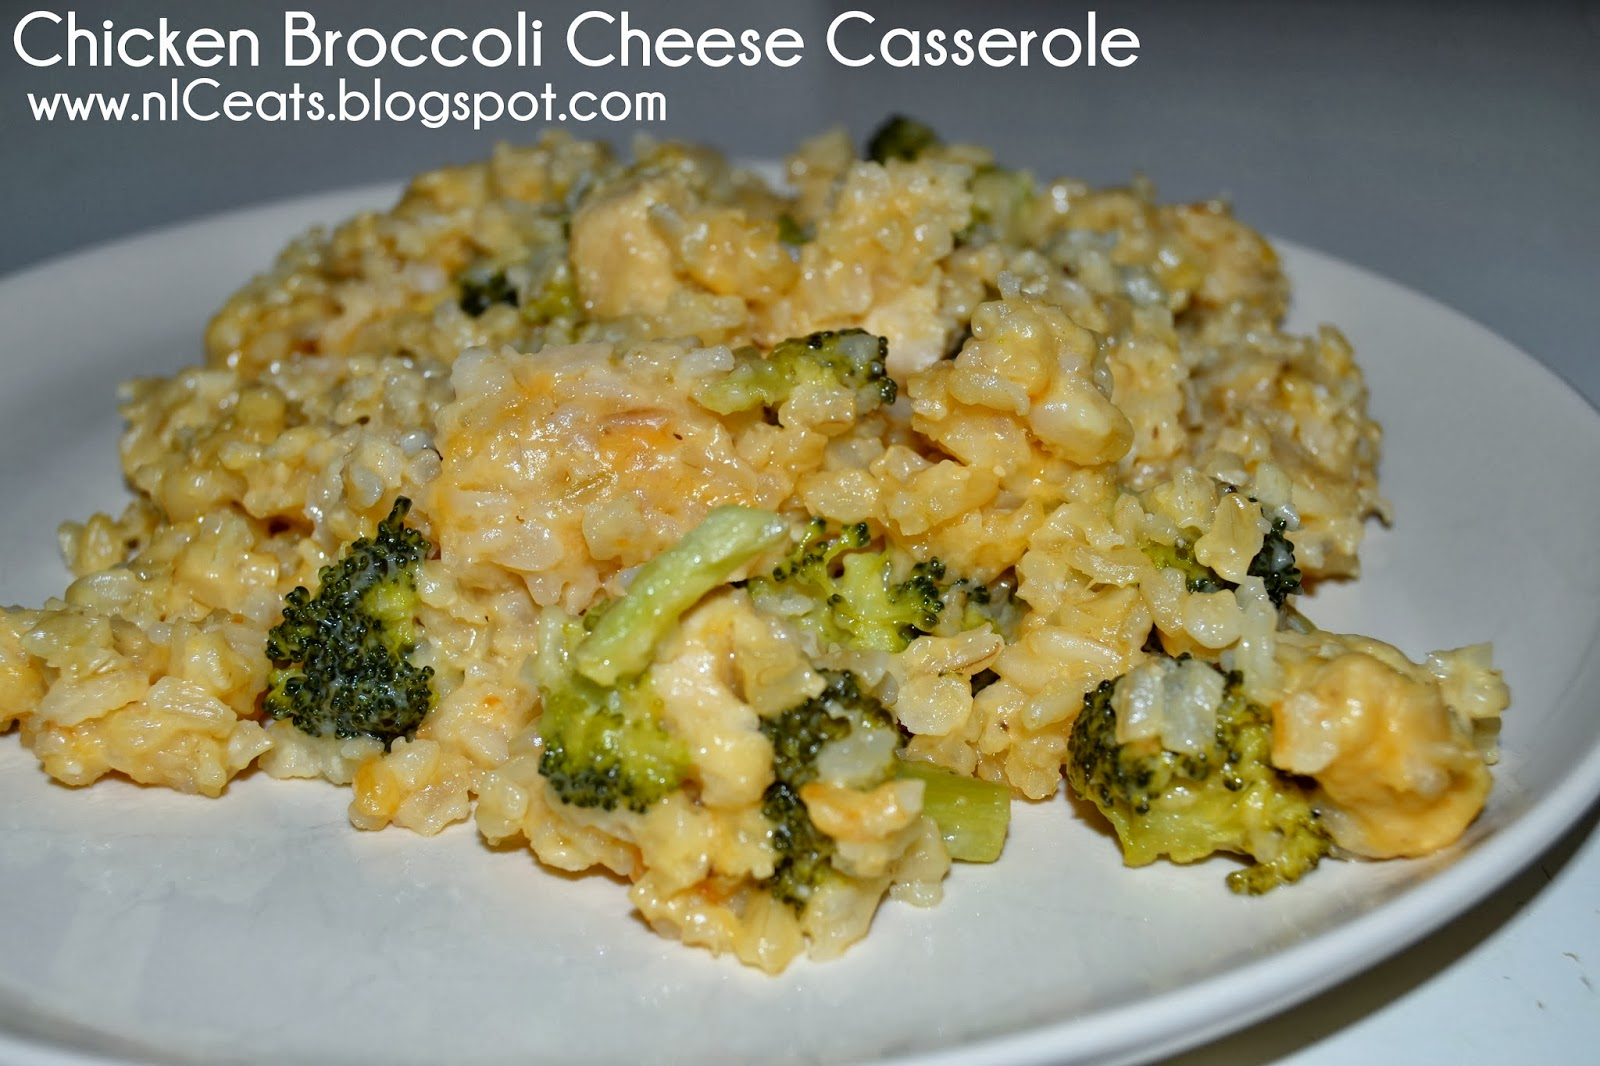 nICeats: Chicken Broccoli Cheese Casserole